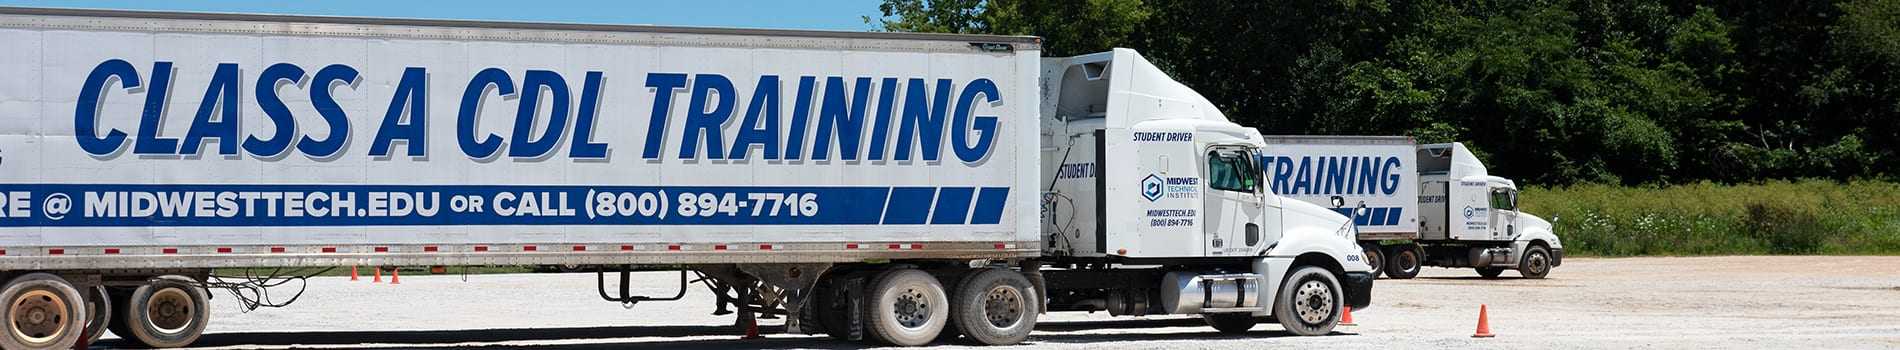 CDL Training Course